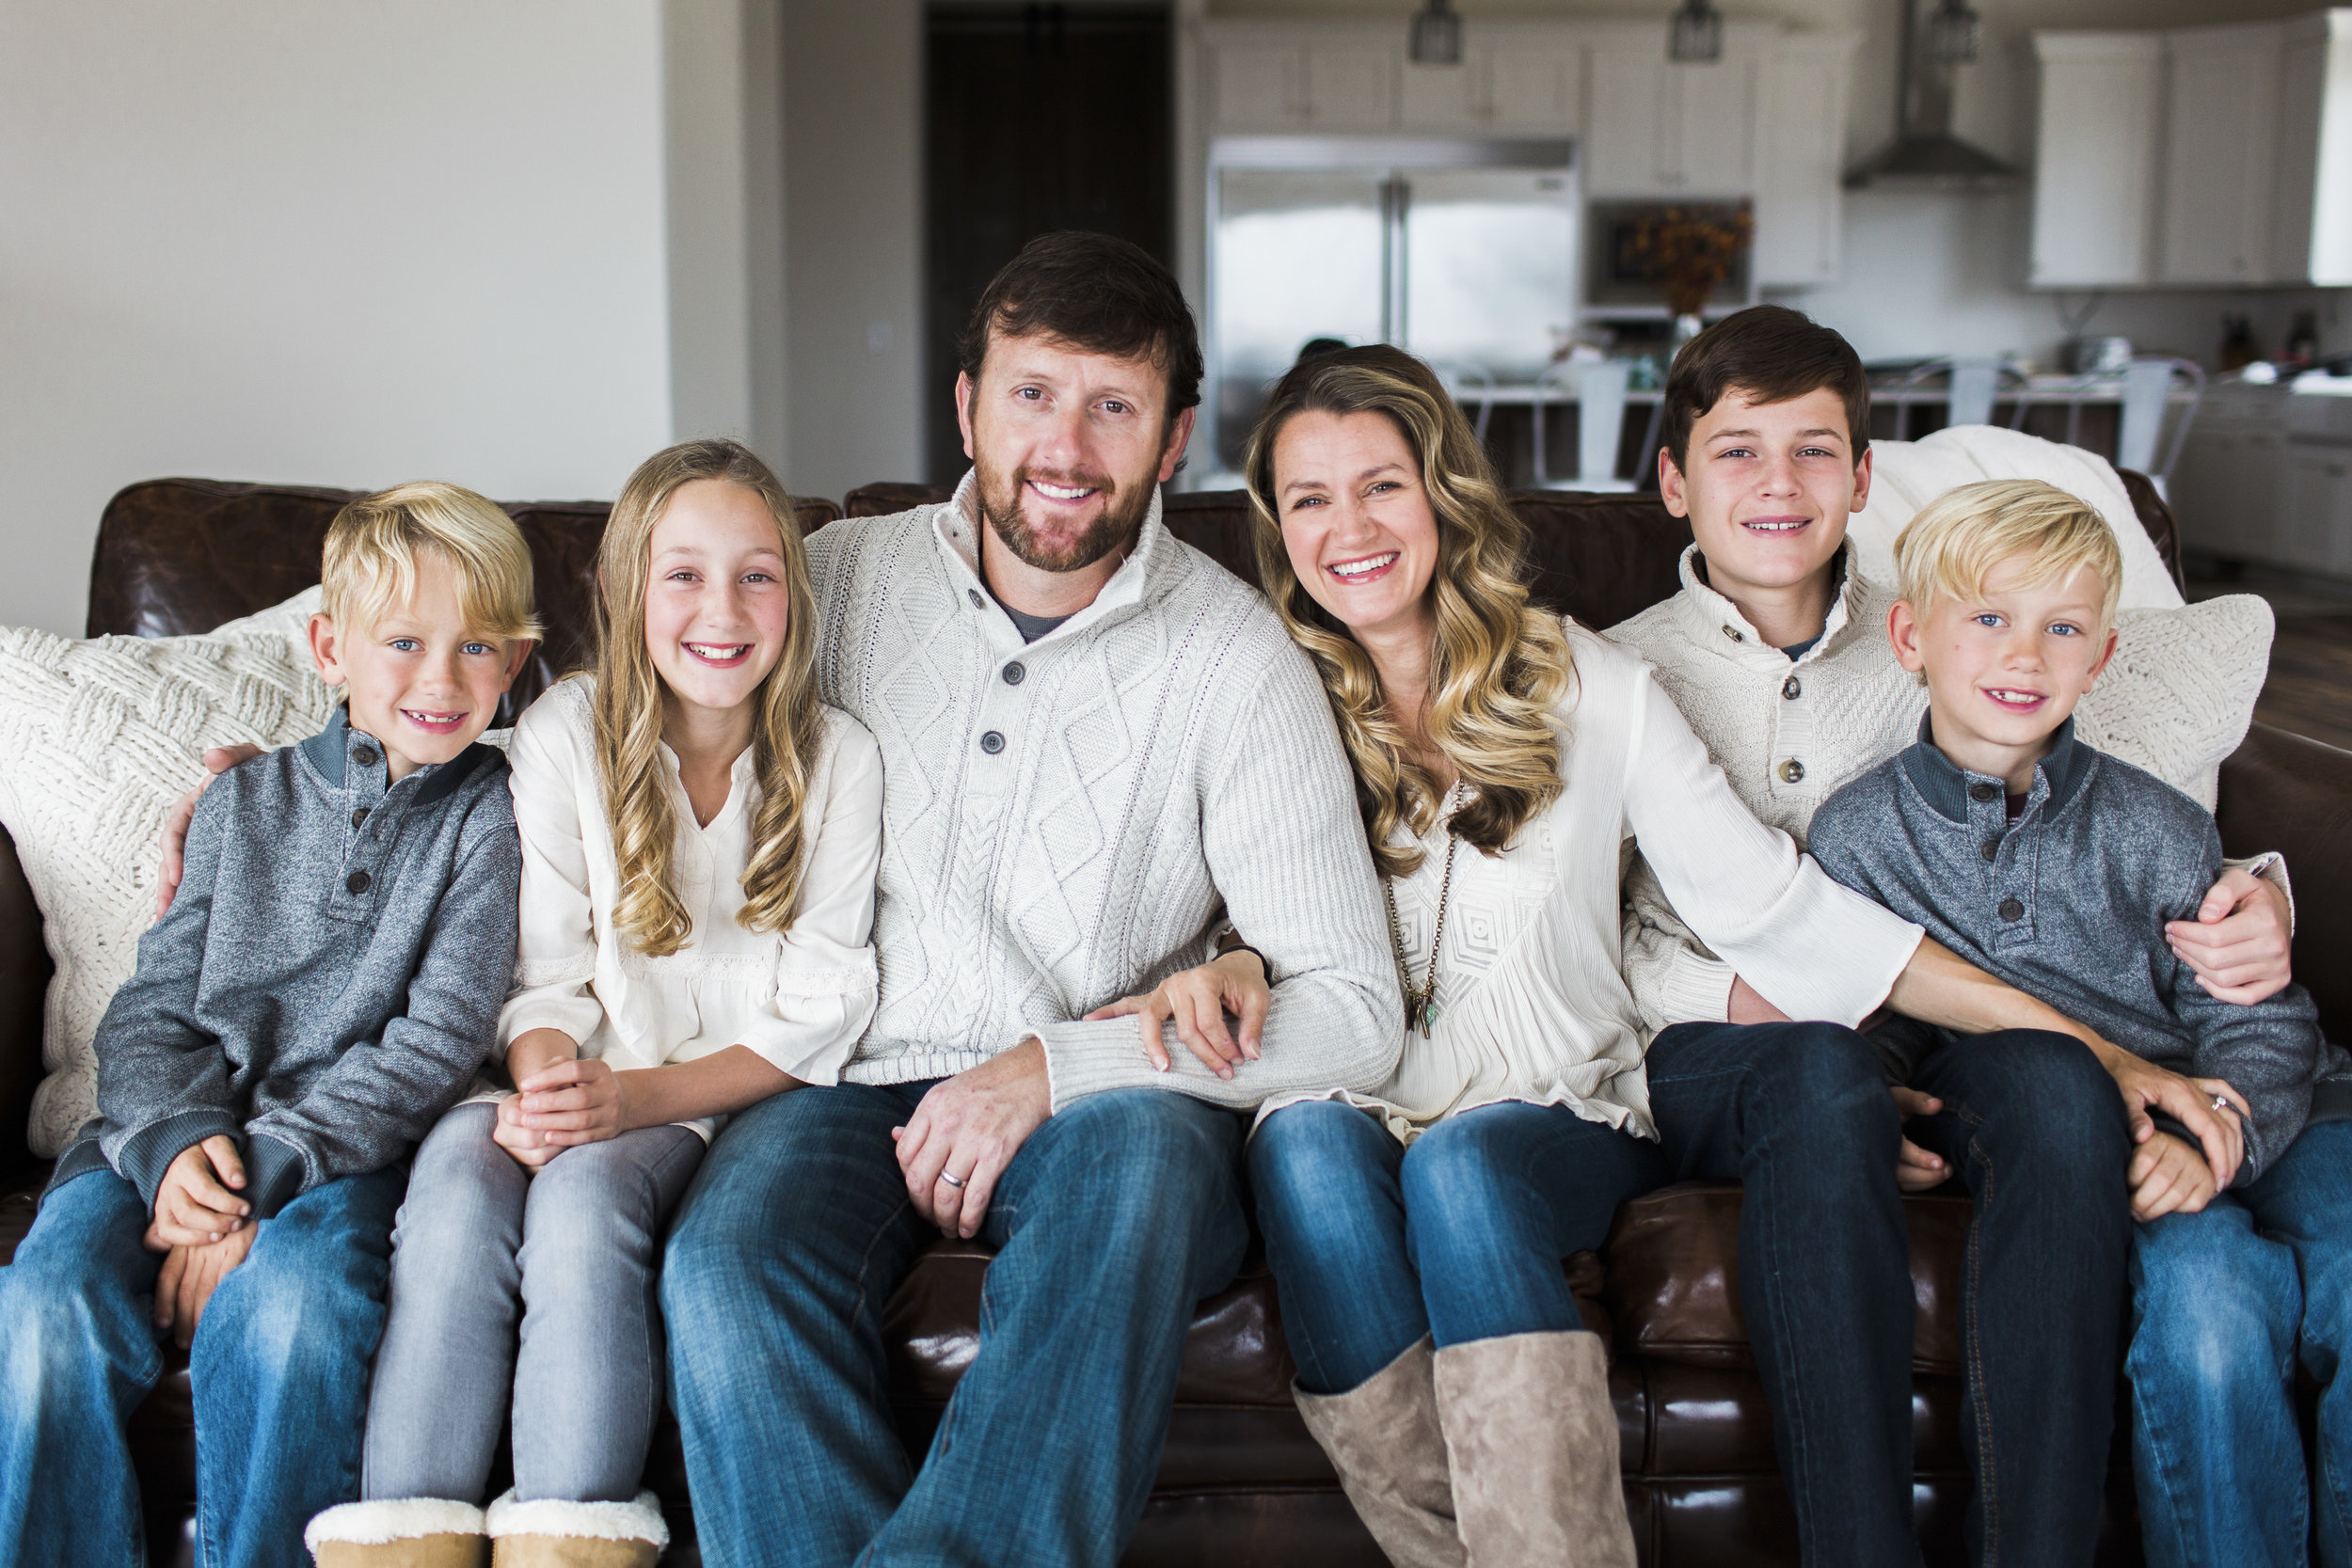 Brandon Chesbro Family Photographer Photo-15.jpg